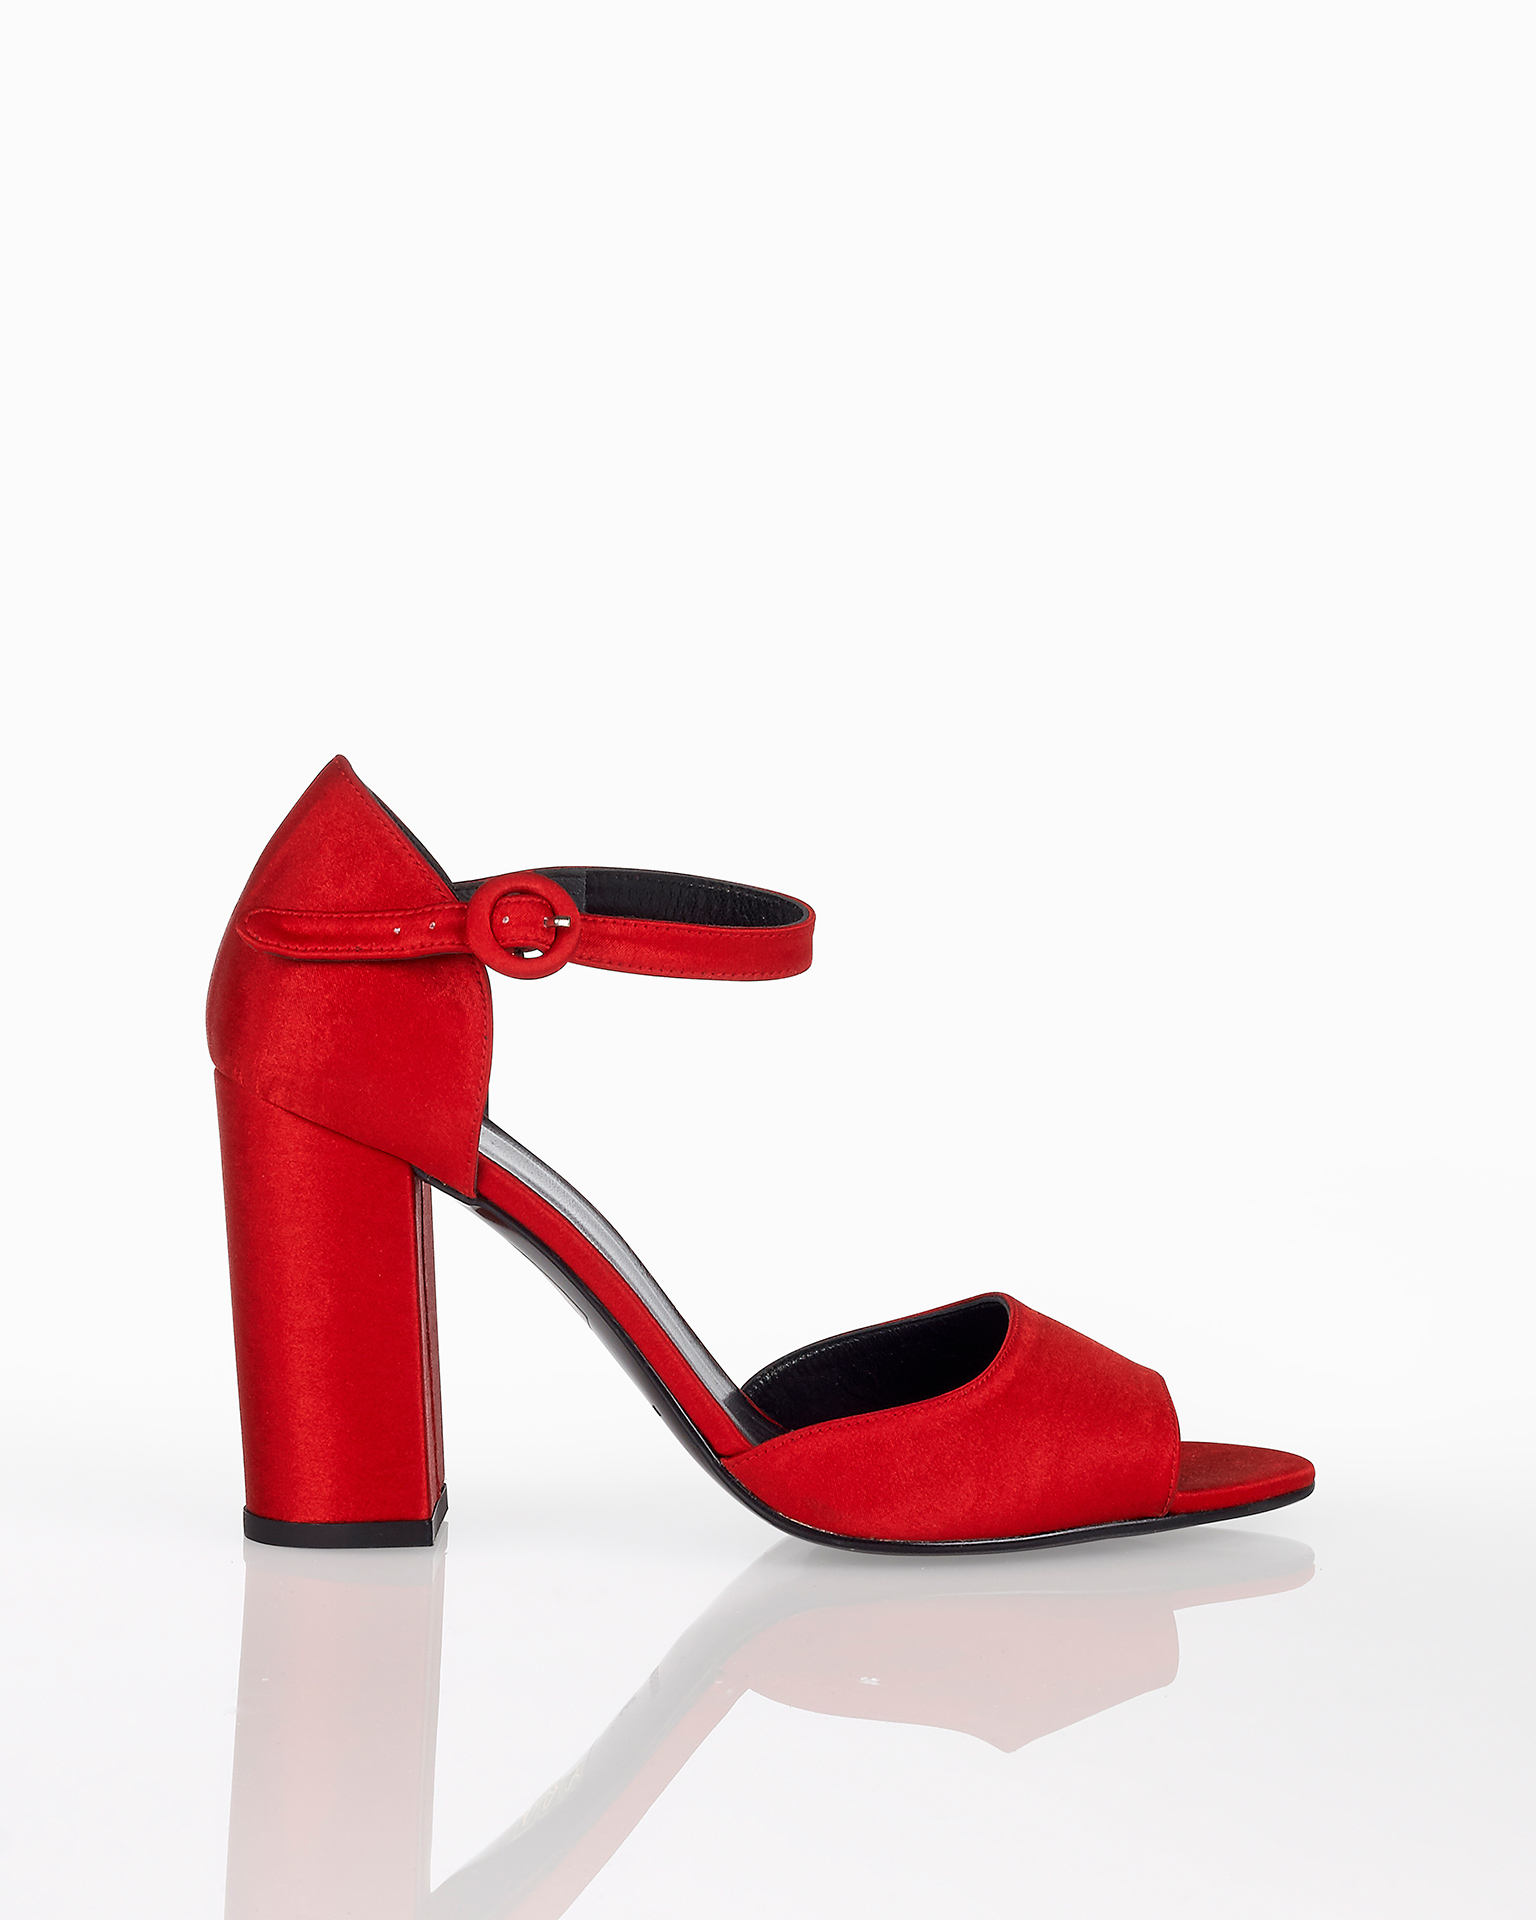 Satin cocktail sandals with closed mid heel, available in a cobalt, lead, red and black. 2018 FIESTA AIRE BARCELONA Collection.